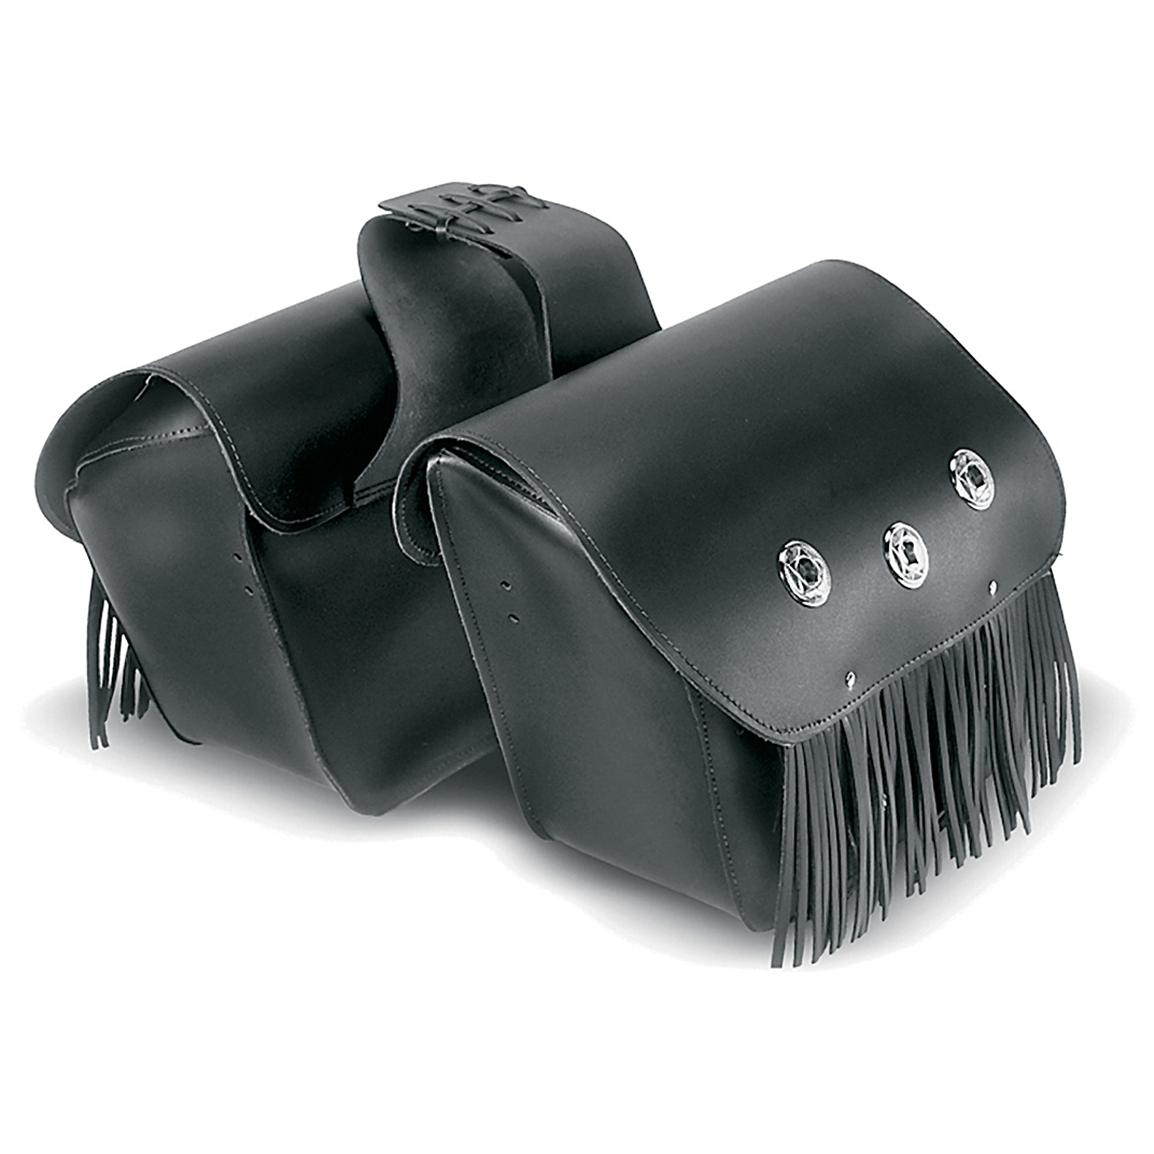 Carroll Heavy Duty Large Slant Throw-Over Saddlebag with Fringe and Conchos